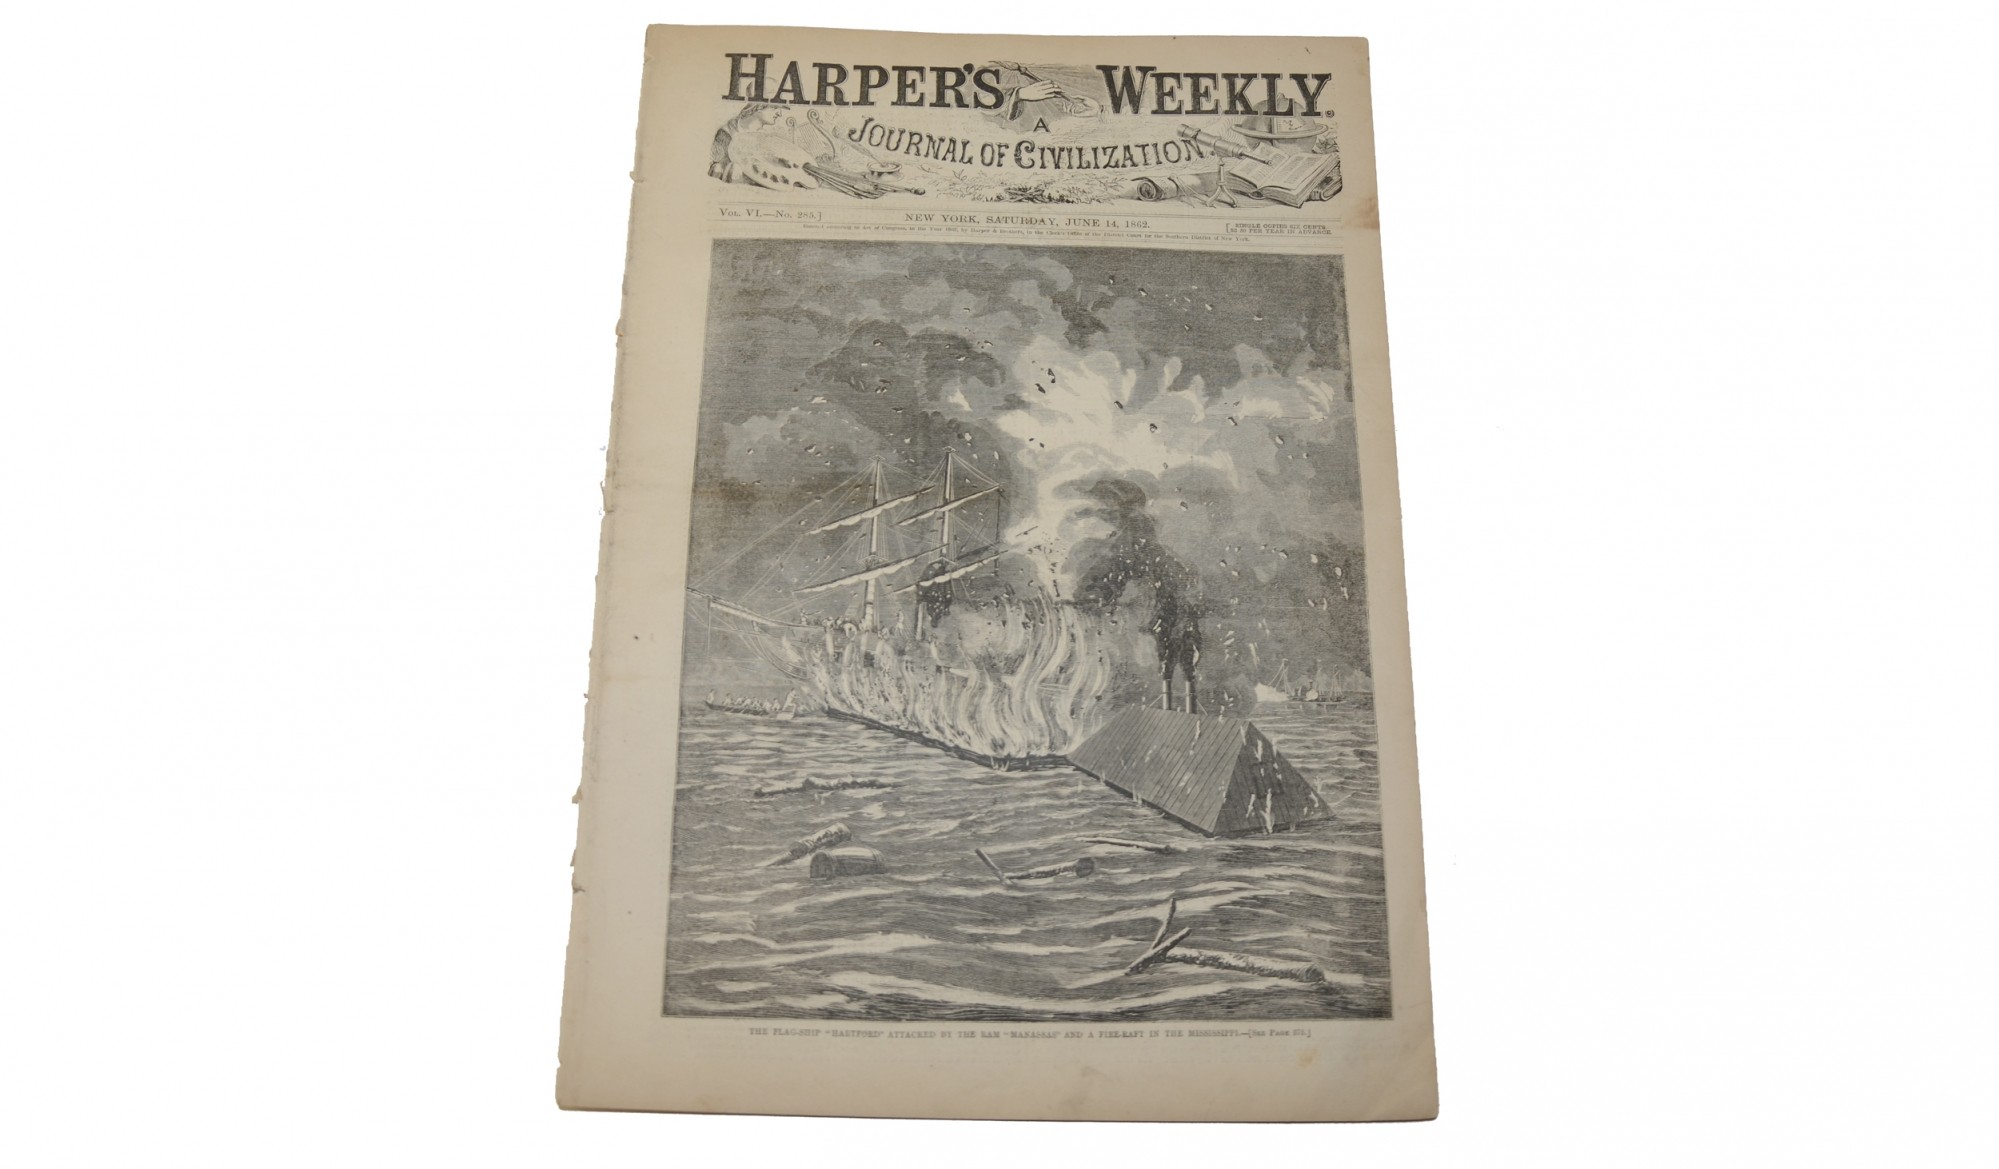 HARPER'S WEEKLY, NEW YORK, JUNE 14, 1862 - USS HARTFORD/MISSISSIPI RIVER RAM ATTACK